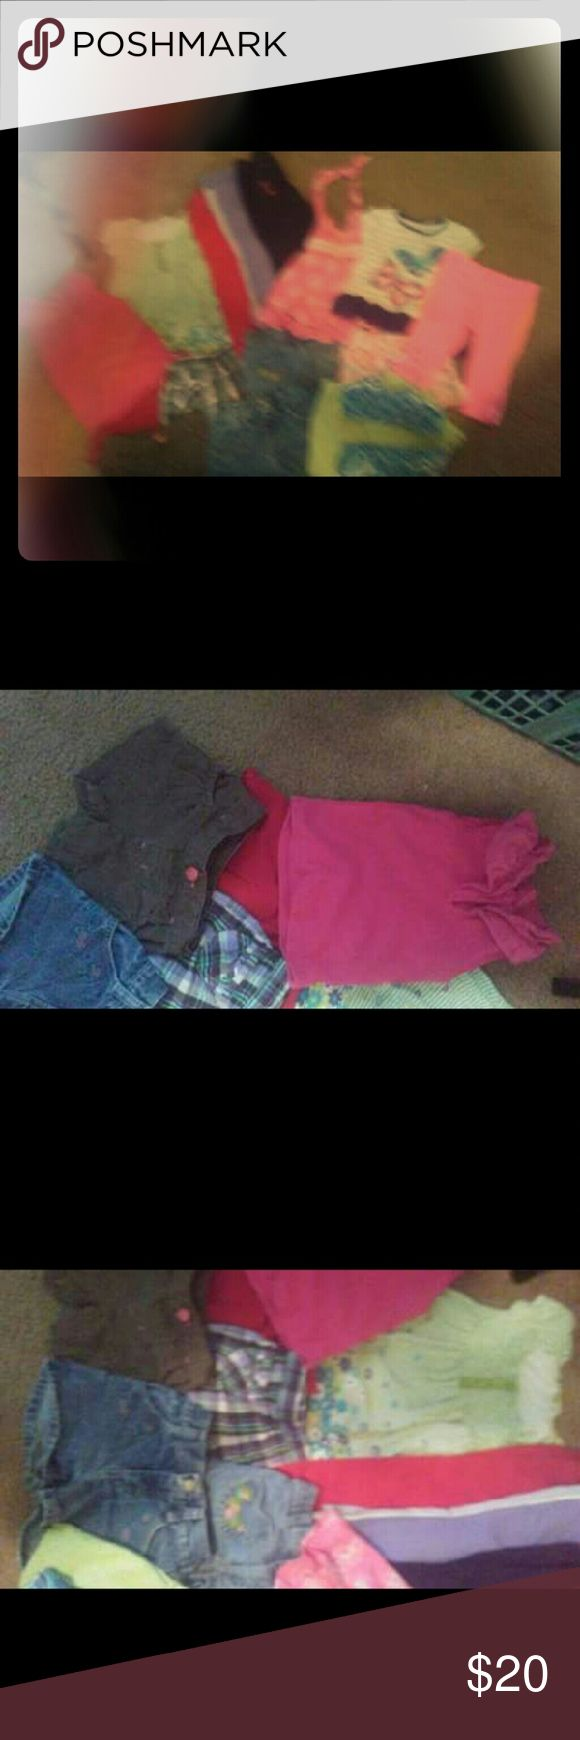 2t Girls Lot 15 pieces Including.... 4 pairs of pants (red plain, black corduroy pants with embroidered flowers, purple sweats, and some adorable NWOT pair of orange/hot pink jogging pants)  7 pairs shorts (2 jean, 1 brown, 1 plaid, 1 red, 1 green n white checked, 1 pink with summer print) 1 dress 1 collared tank 1 NWOT.blue wave print bikini 1 halter top 1 NWOT tutu top Other